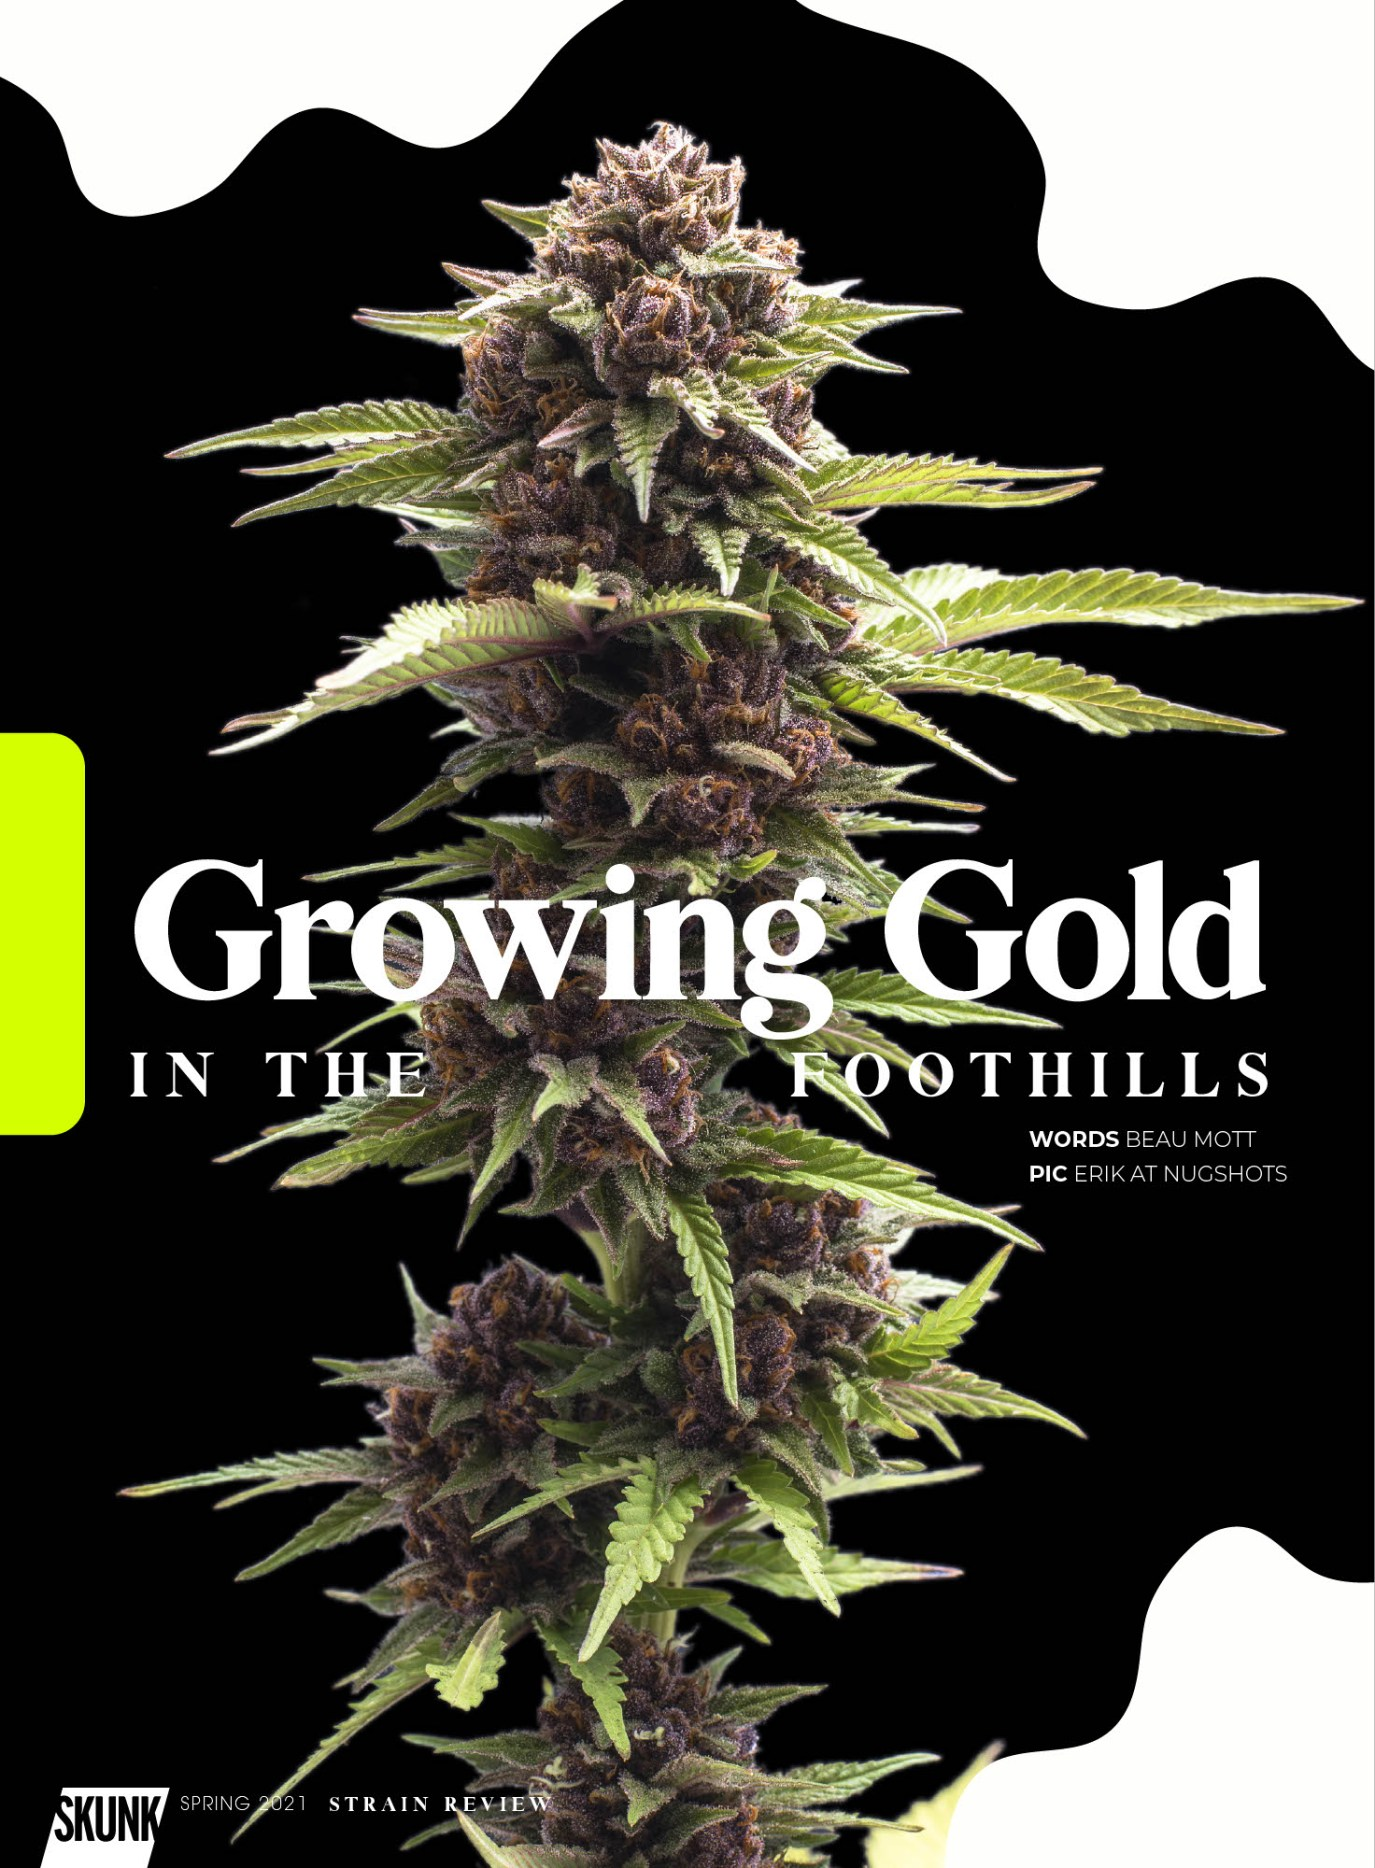 Growing Gold in the Foothills